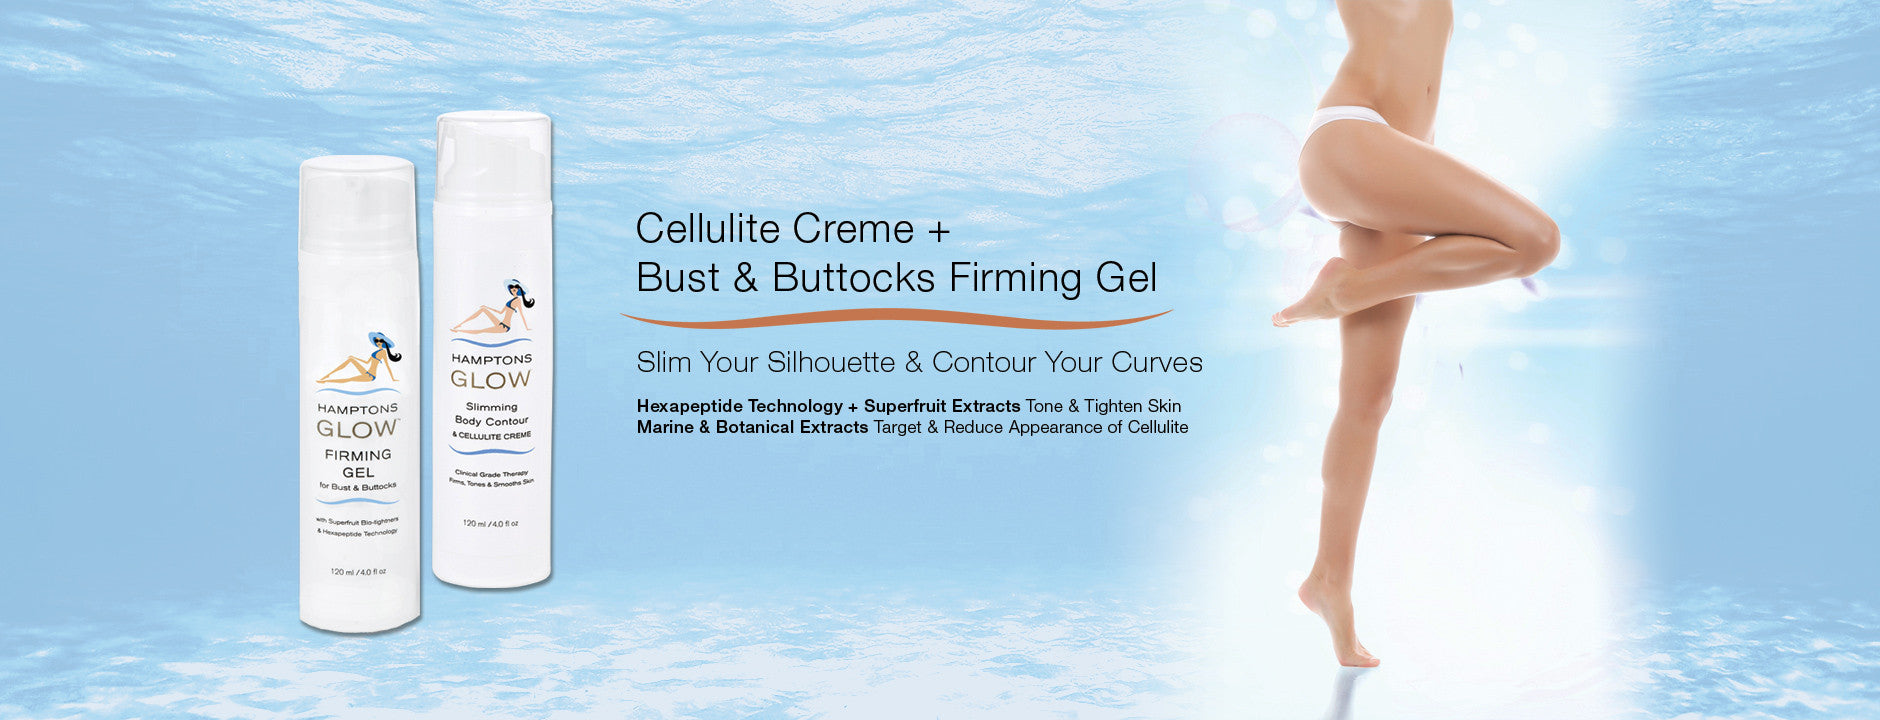 Cellulite & Firming